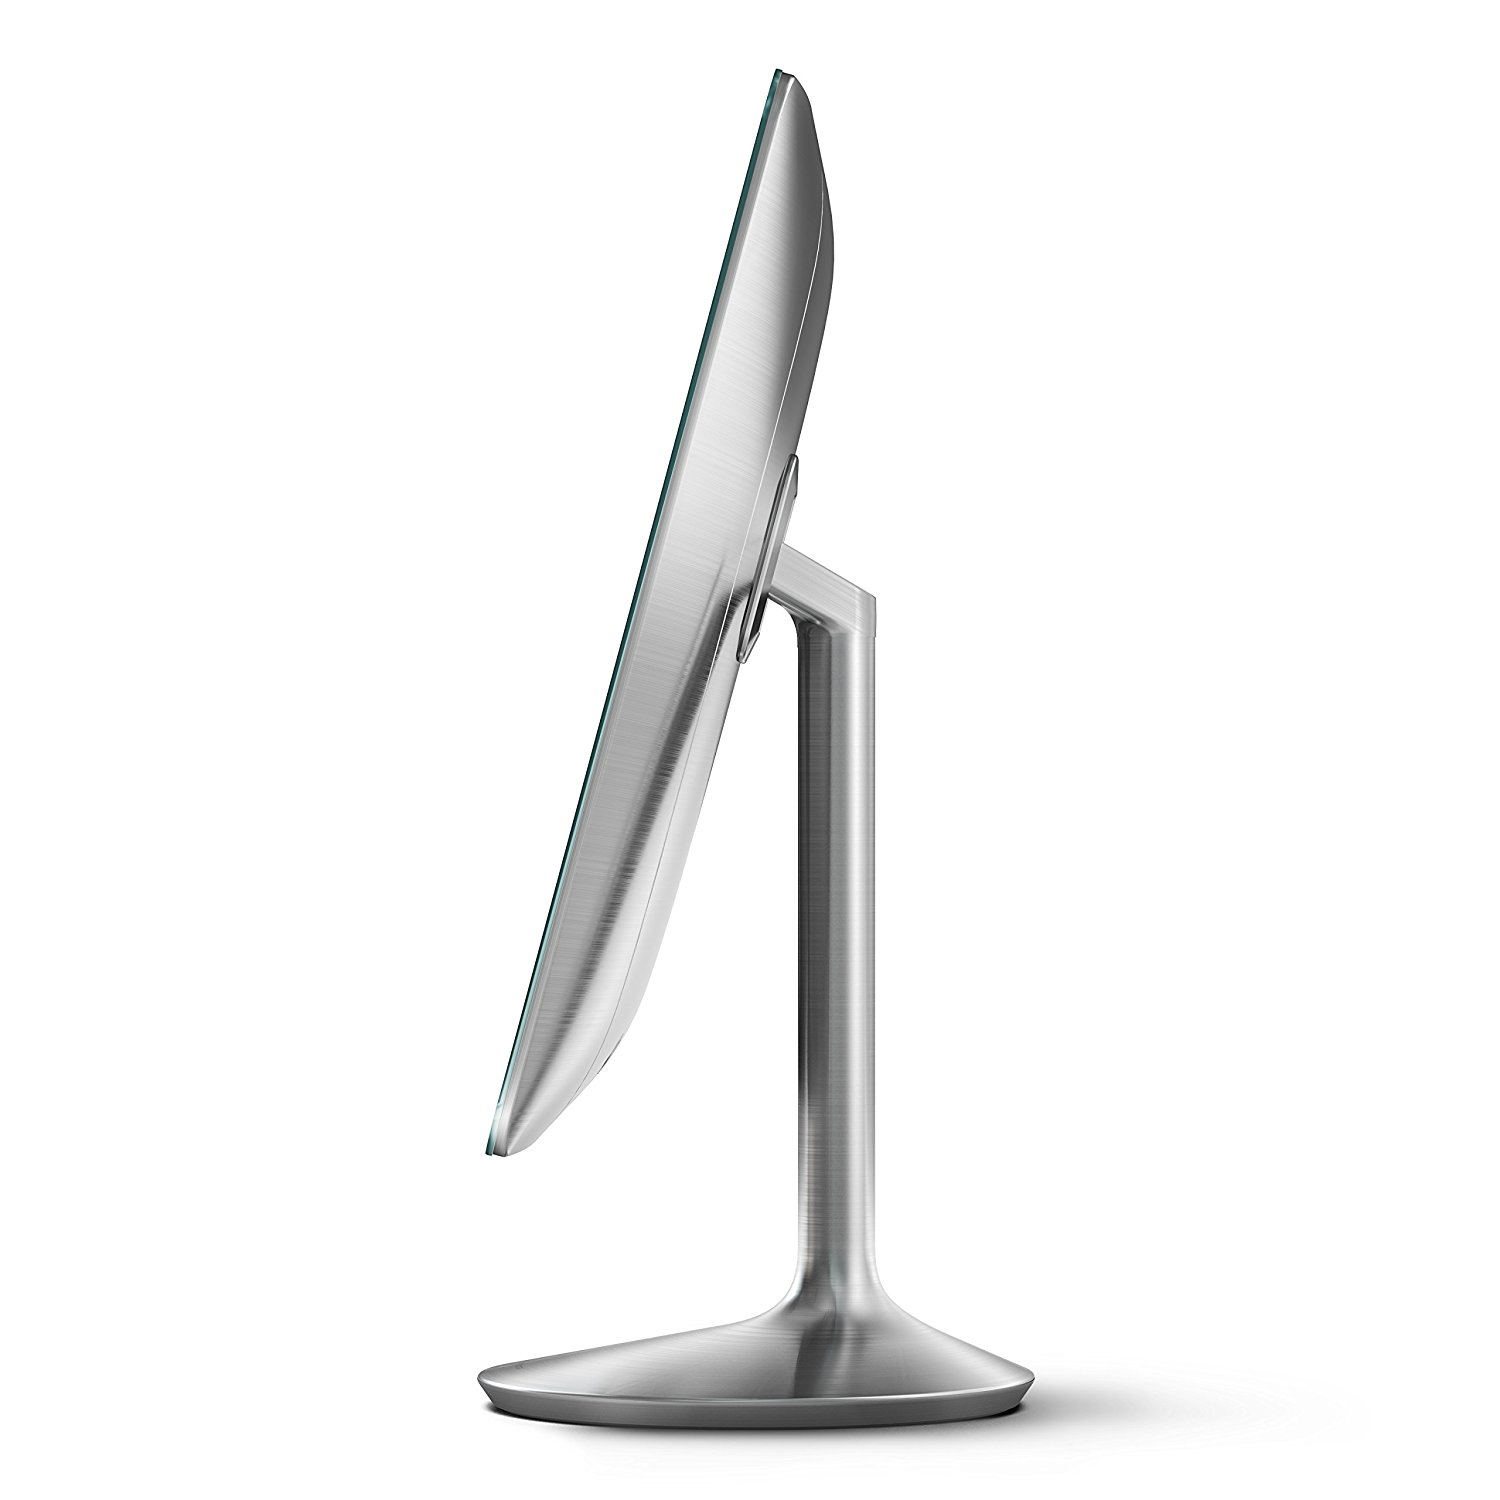 Simplehuman Sensor Mirror Pro Wide View Lighted Vanity Mirror 5